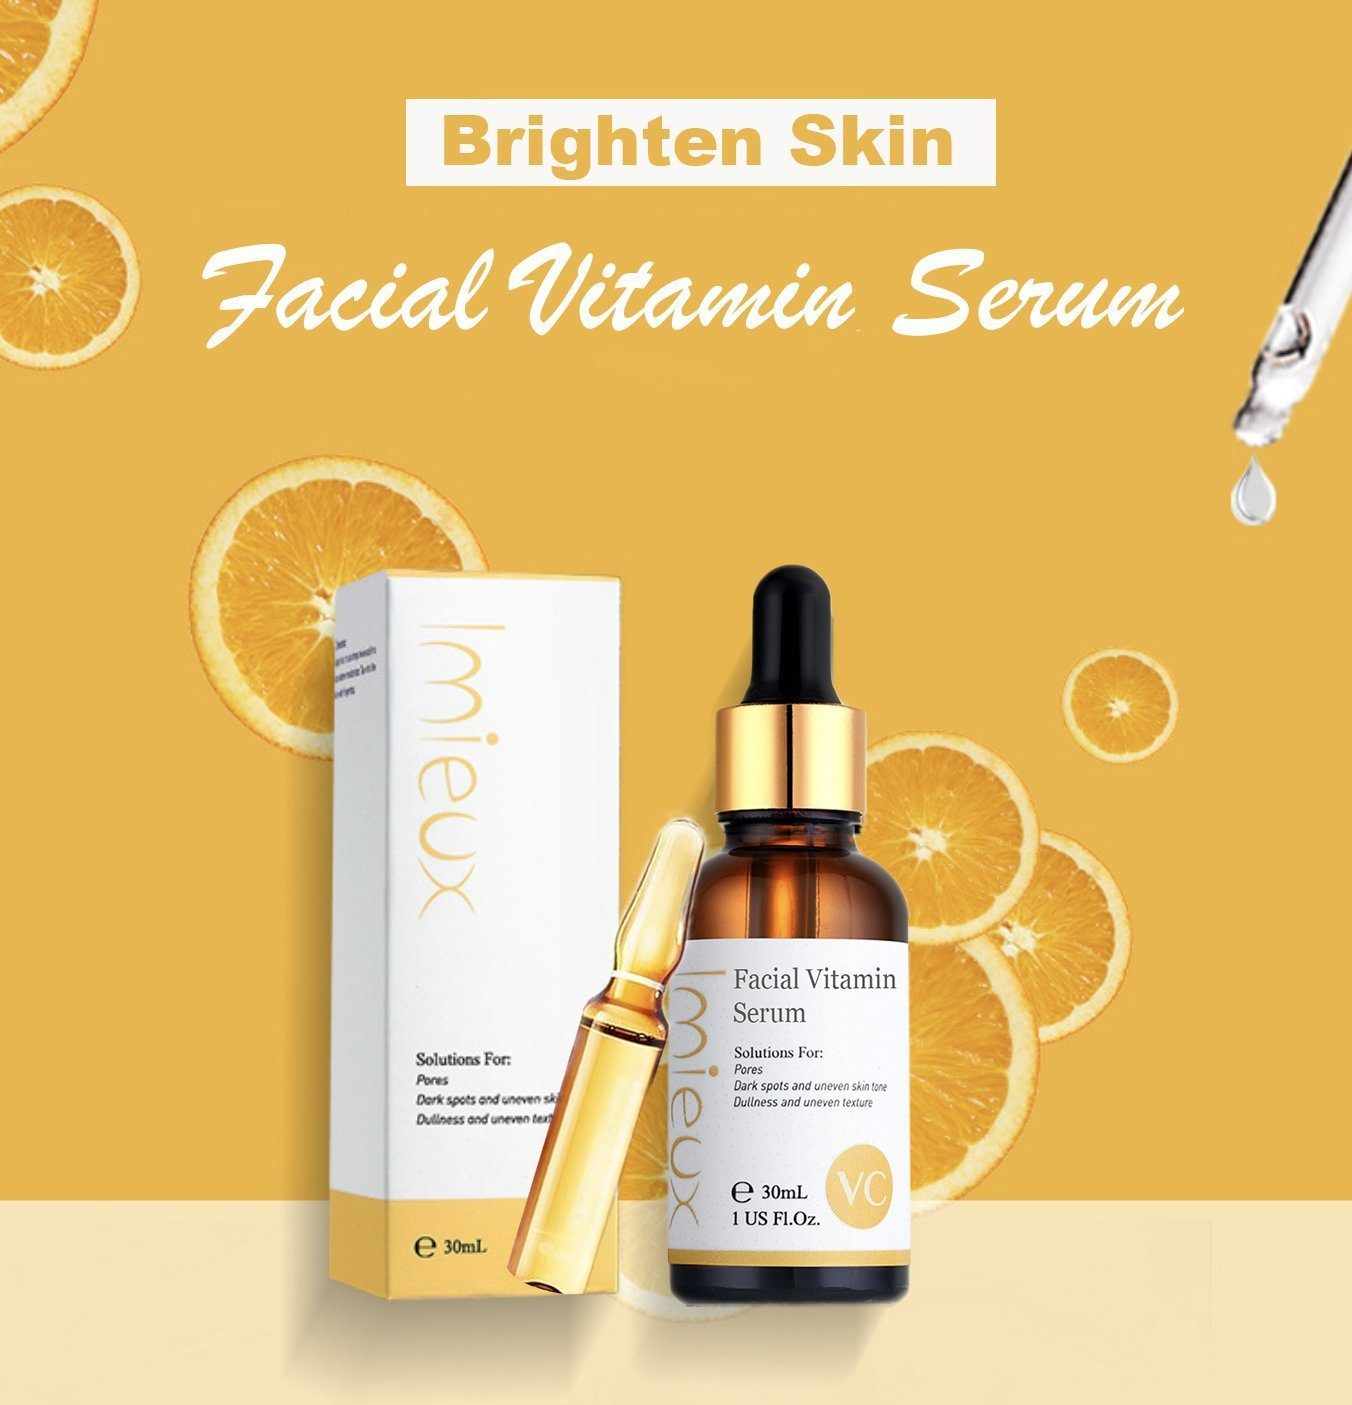 Facial Vitamin Serum